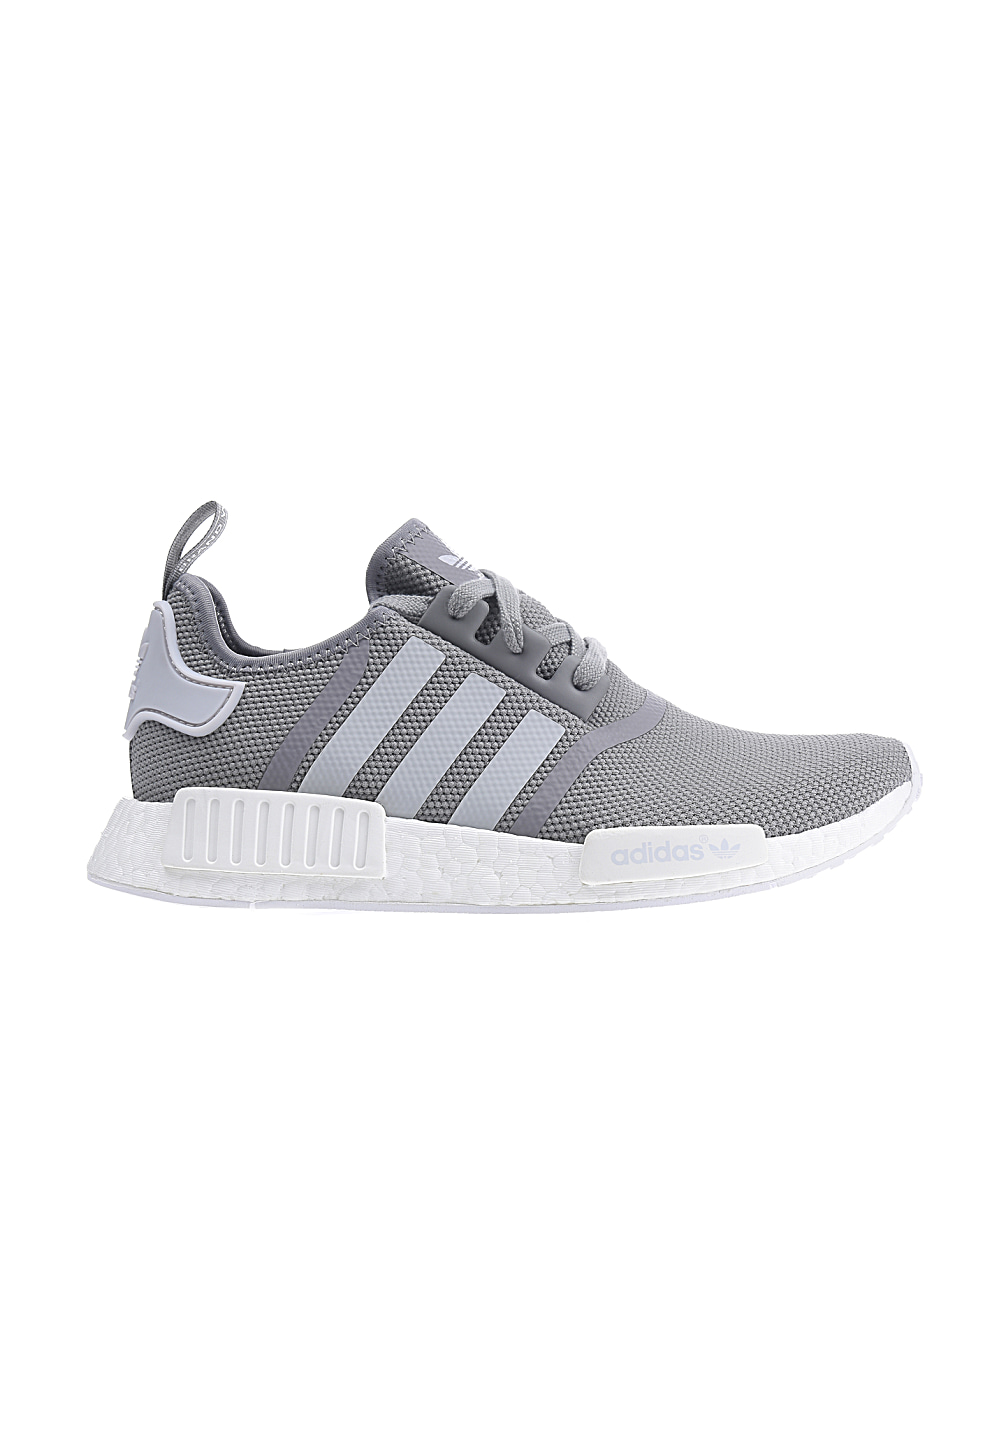 adidas nmd r1 baskets pour homme gris planet sports. Black Bedroom Furniture Sets. Home Design Ideas